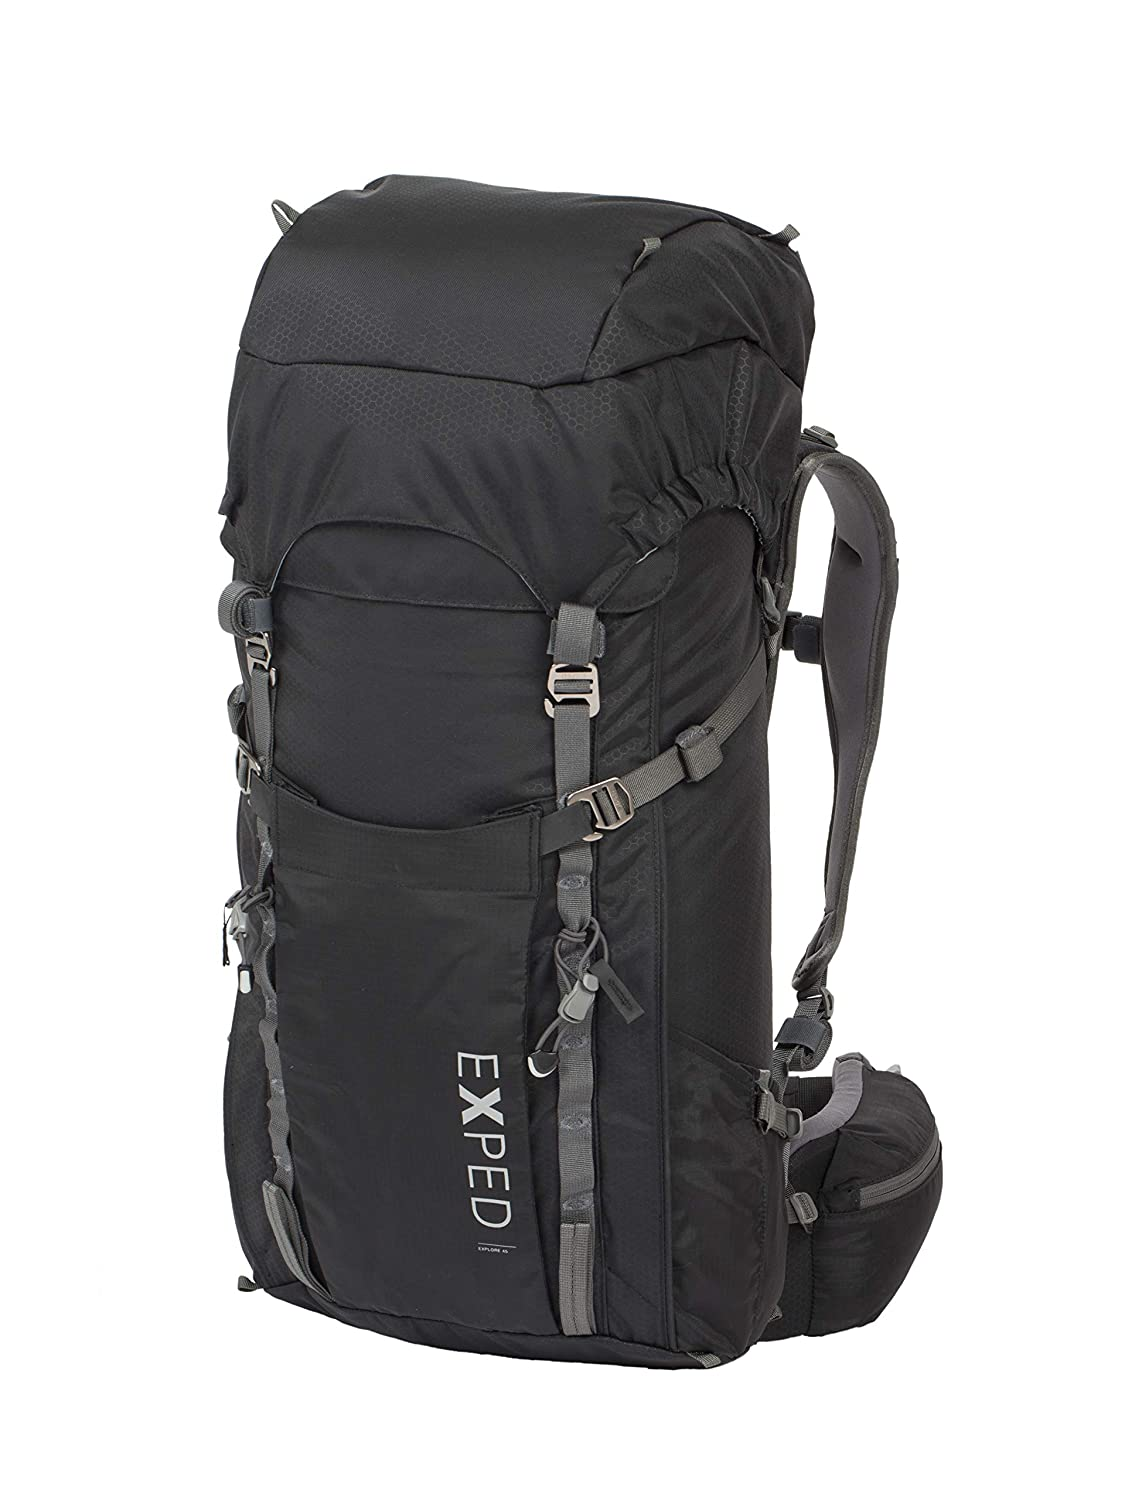 a8deefd15fc7 Amazon.com : Exped Explore 45 Backpacking Pack, 45L, Black : Sports ...